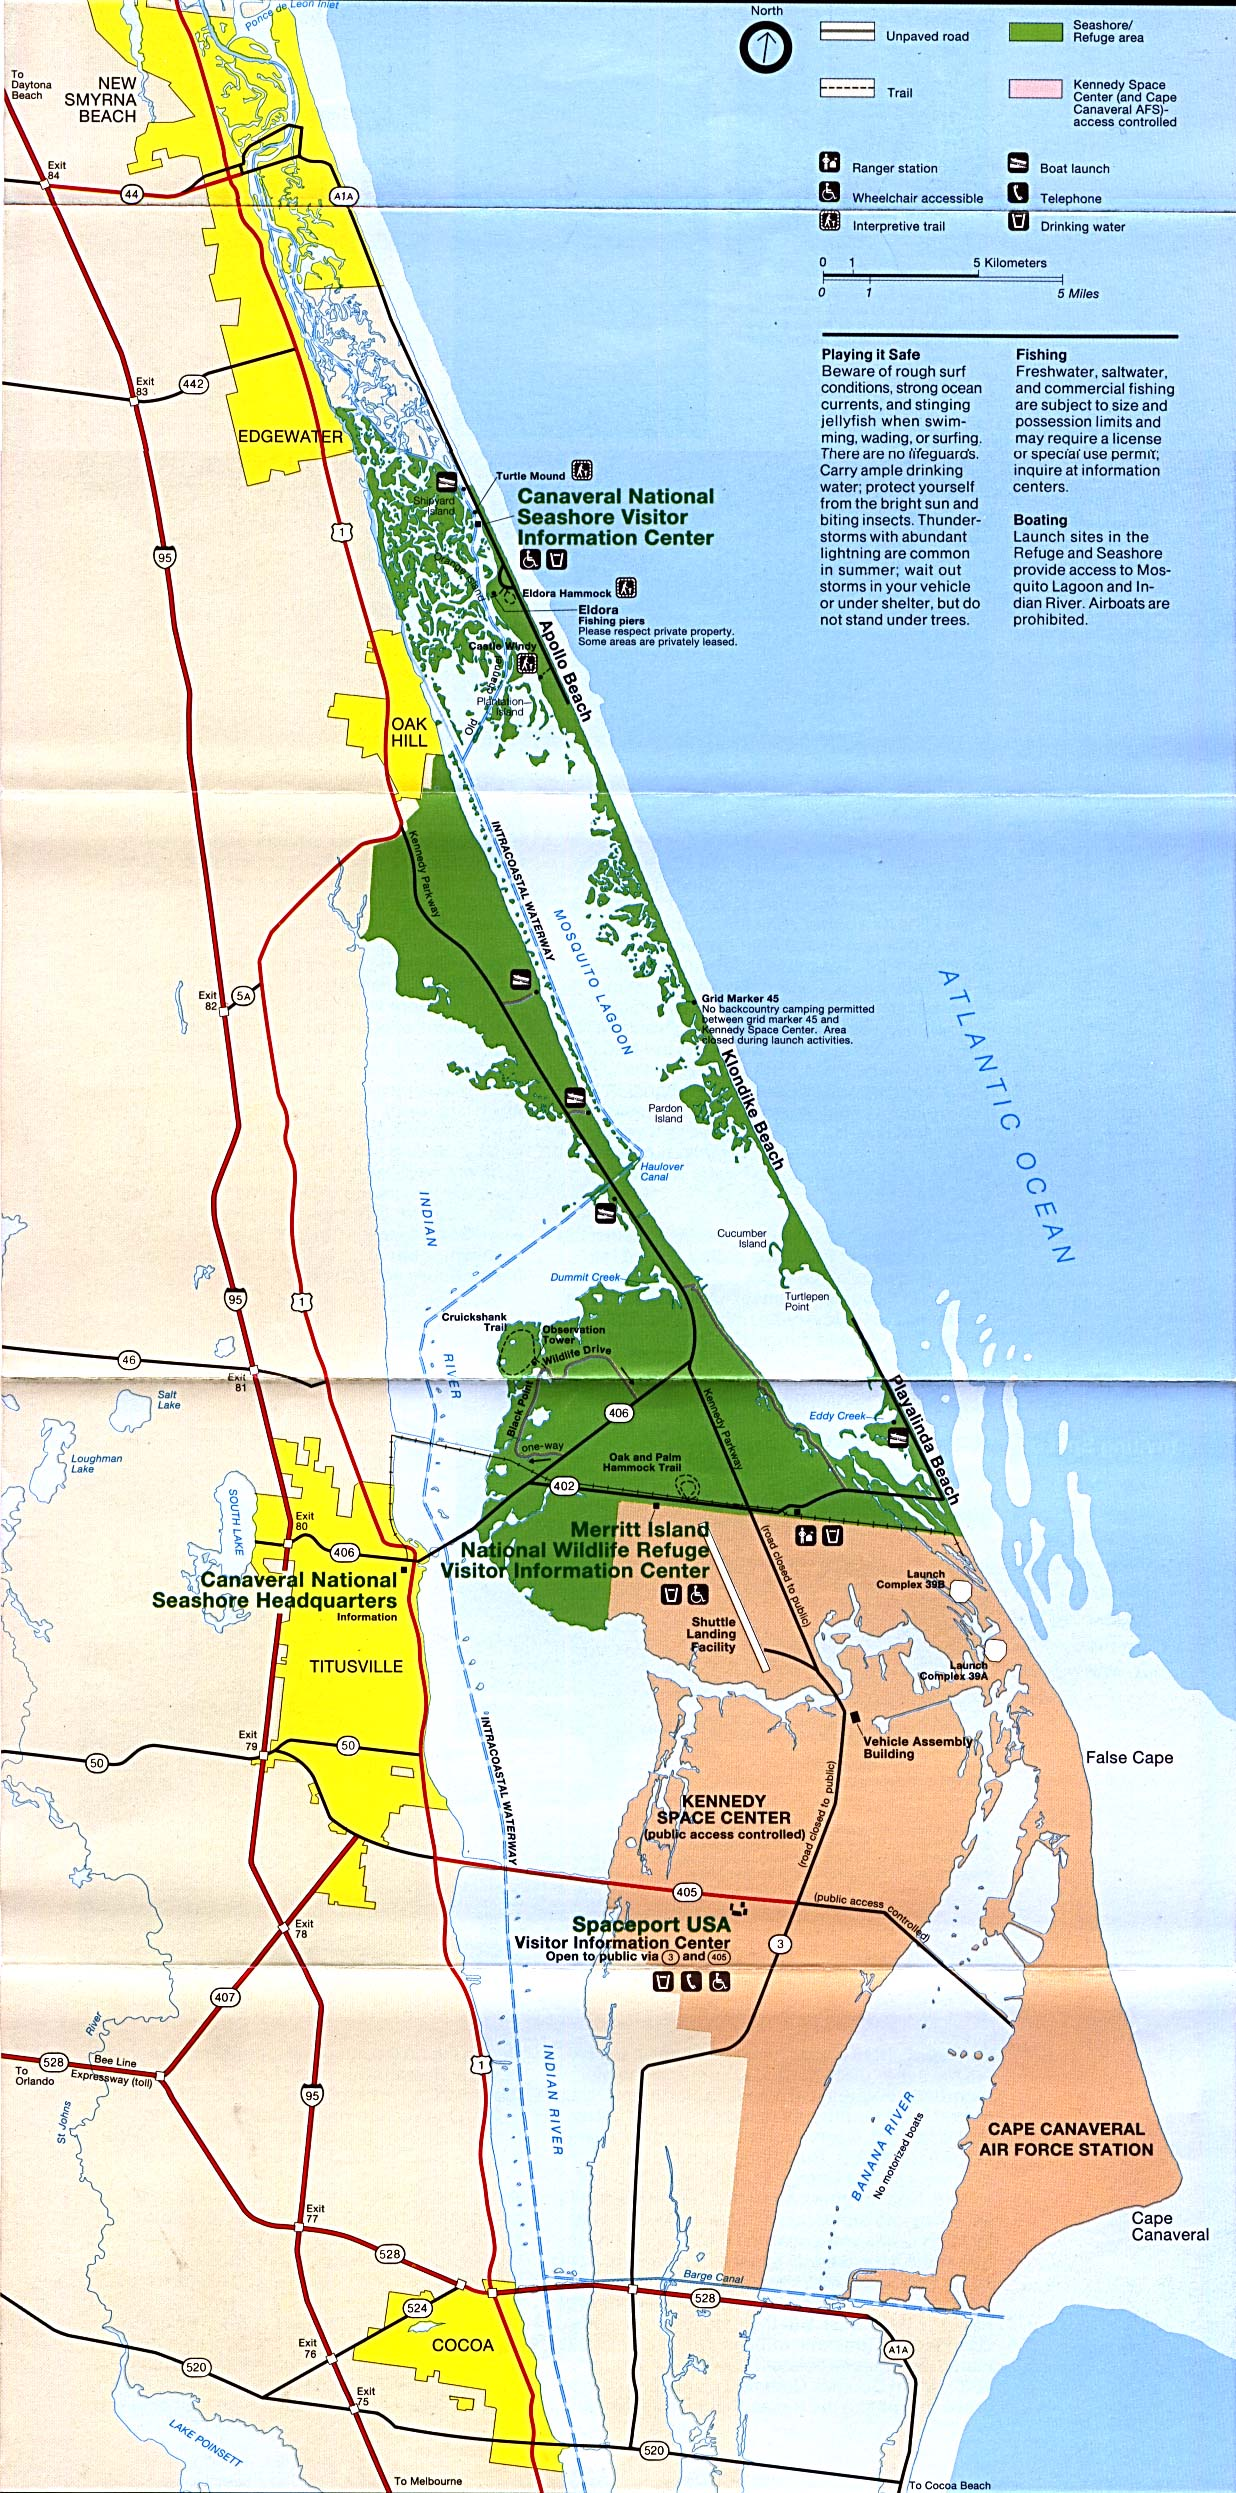 Canaveral and Merritt Island National Seashore Park Map, Florida, United States